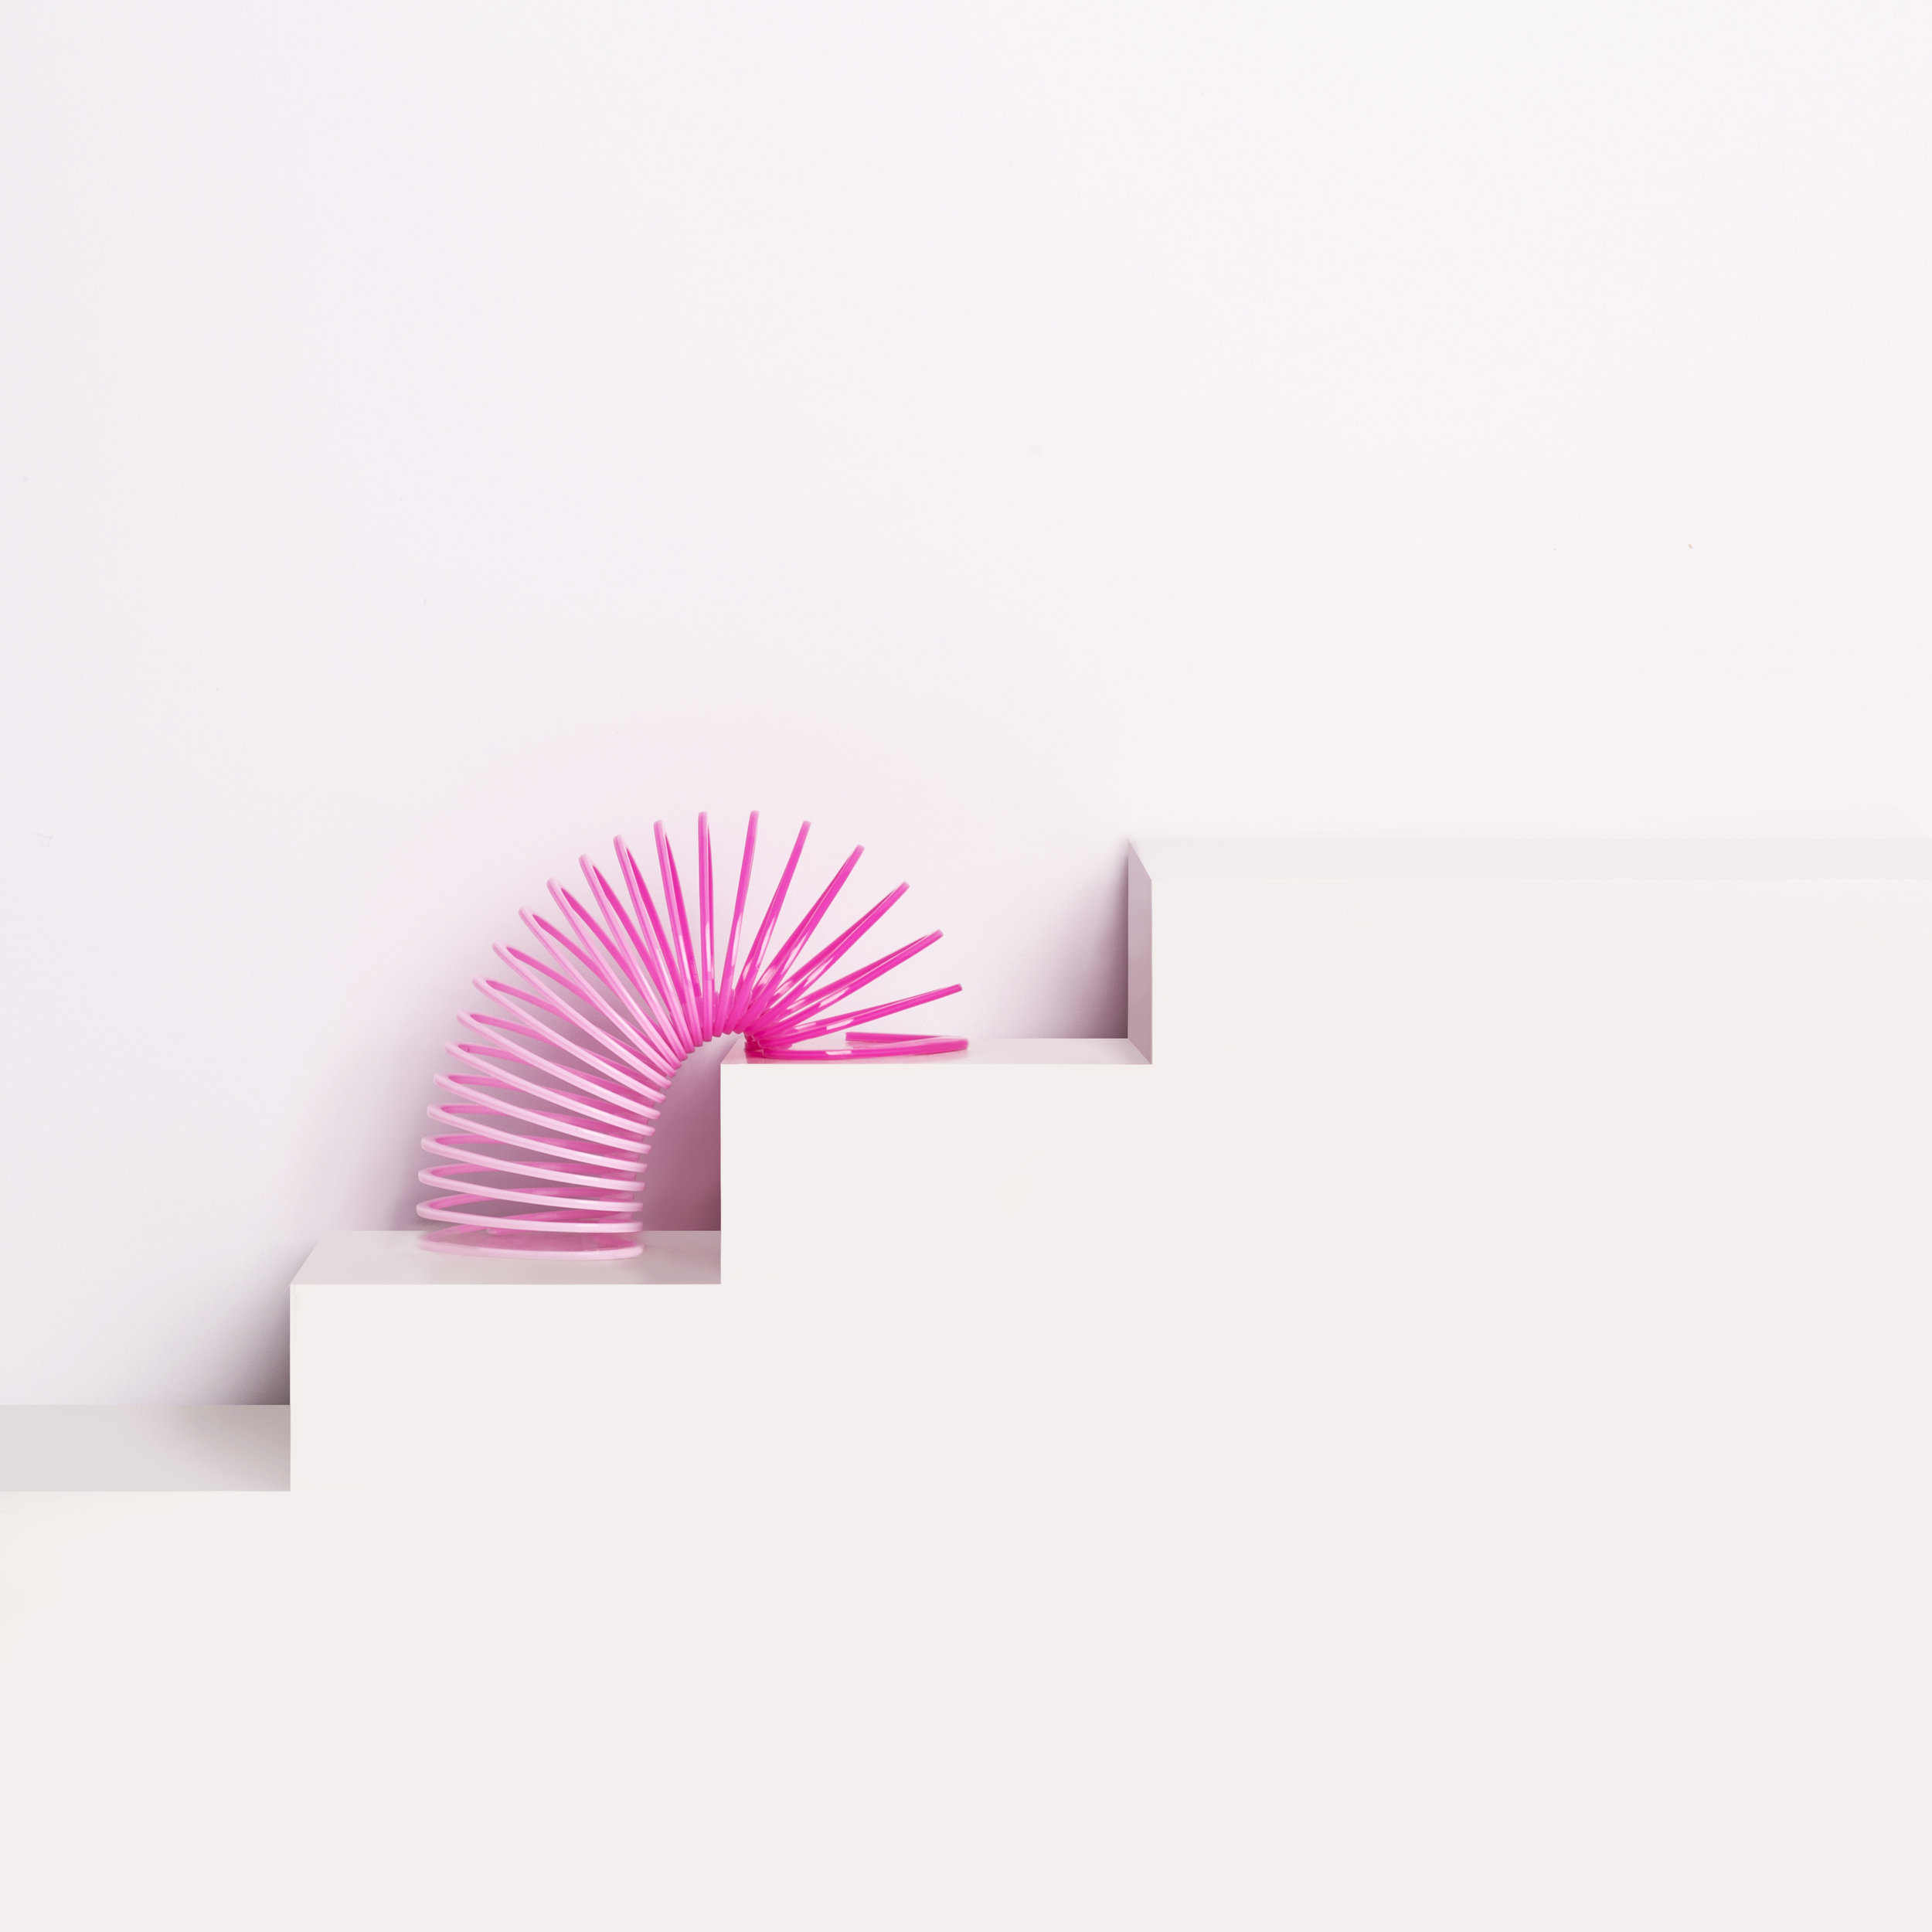 August 30th - Slinky Day